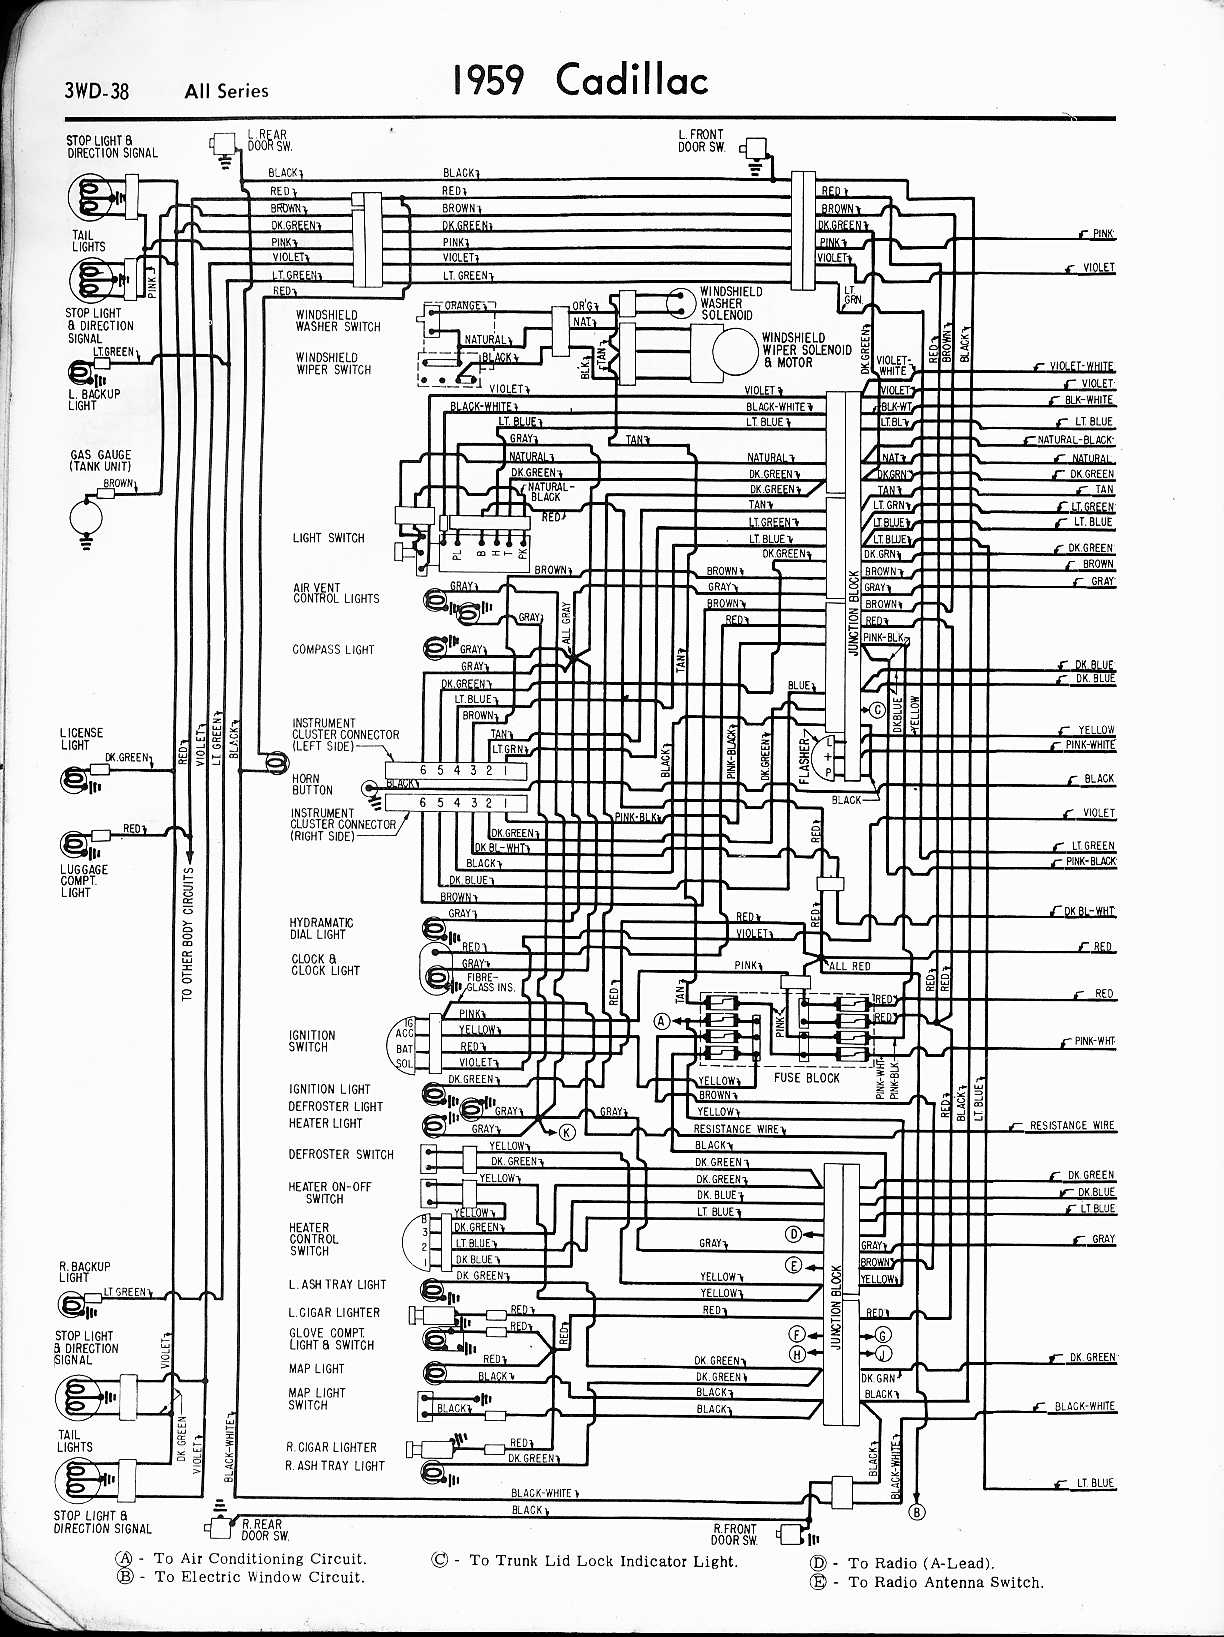 62 Chevy Truck Wiring Diagram Library 59 1956 Cadillac Simple Gmc Free Download Schematic